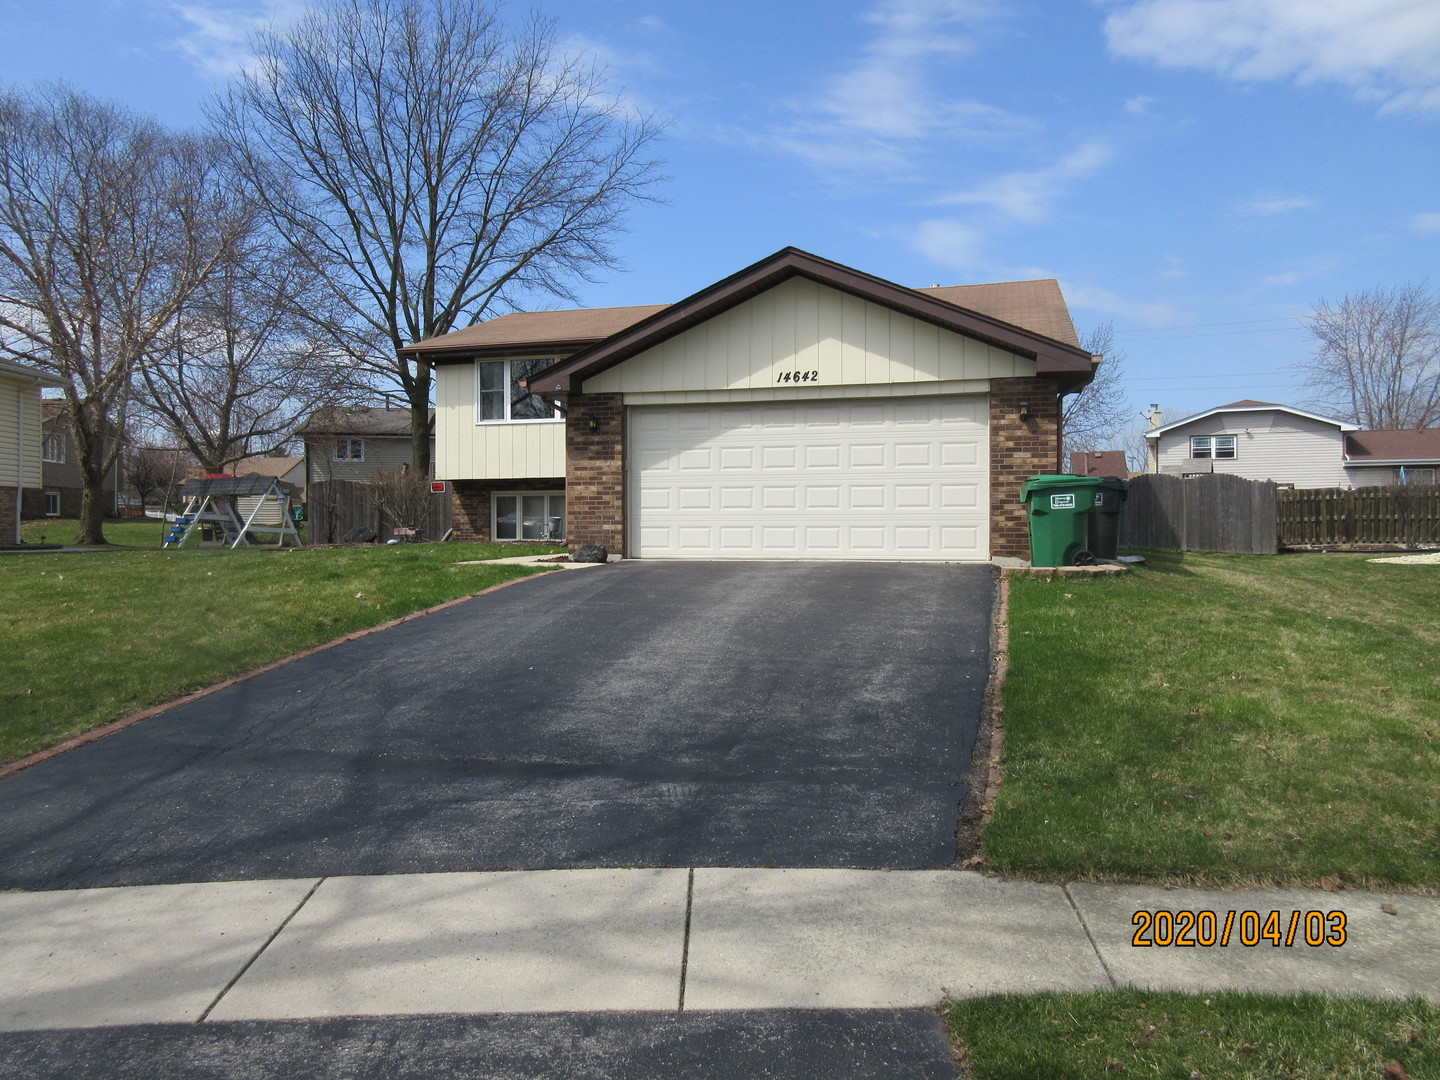 14642 South Cricketwood Court, Homer Glen, Illinois